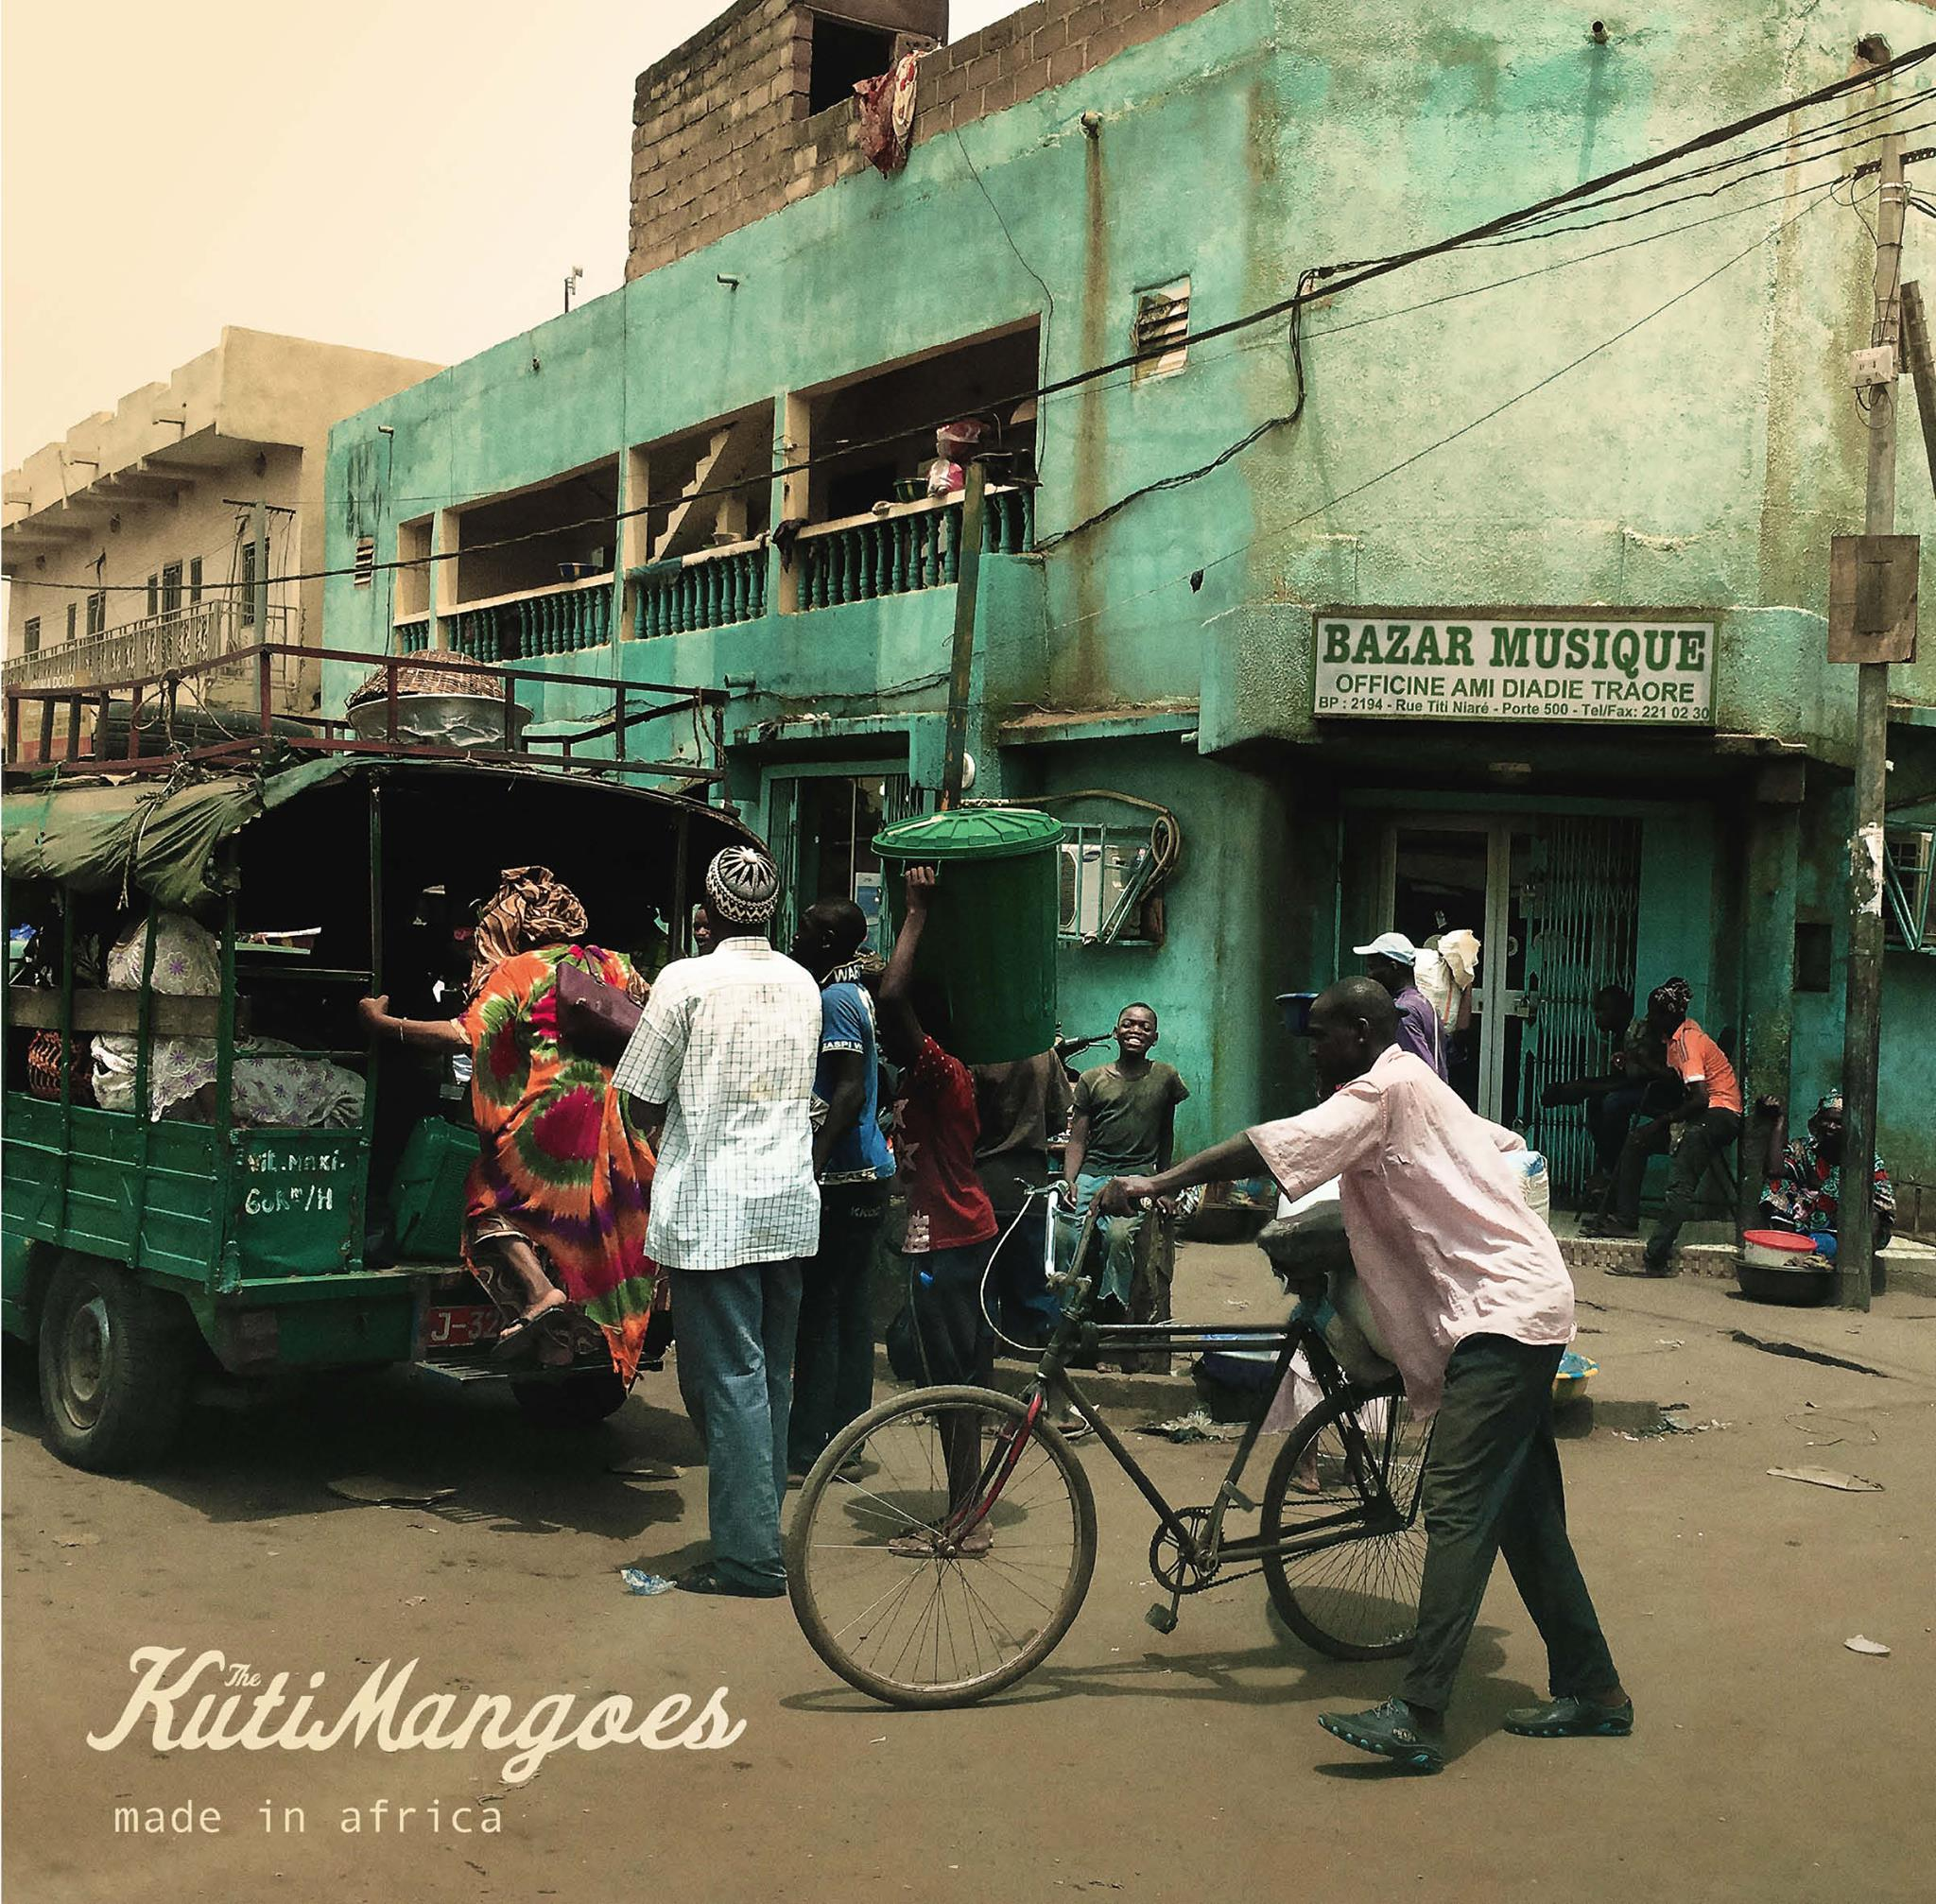 Preview: The KutiMangoes